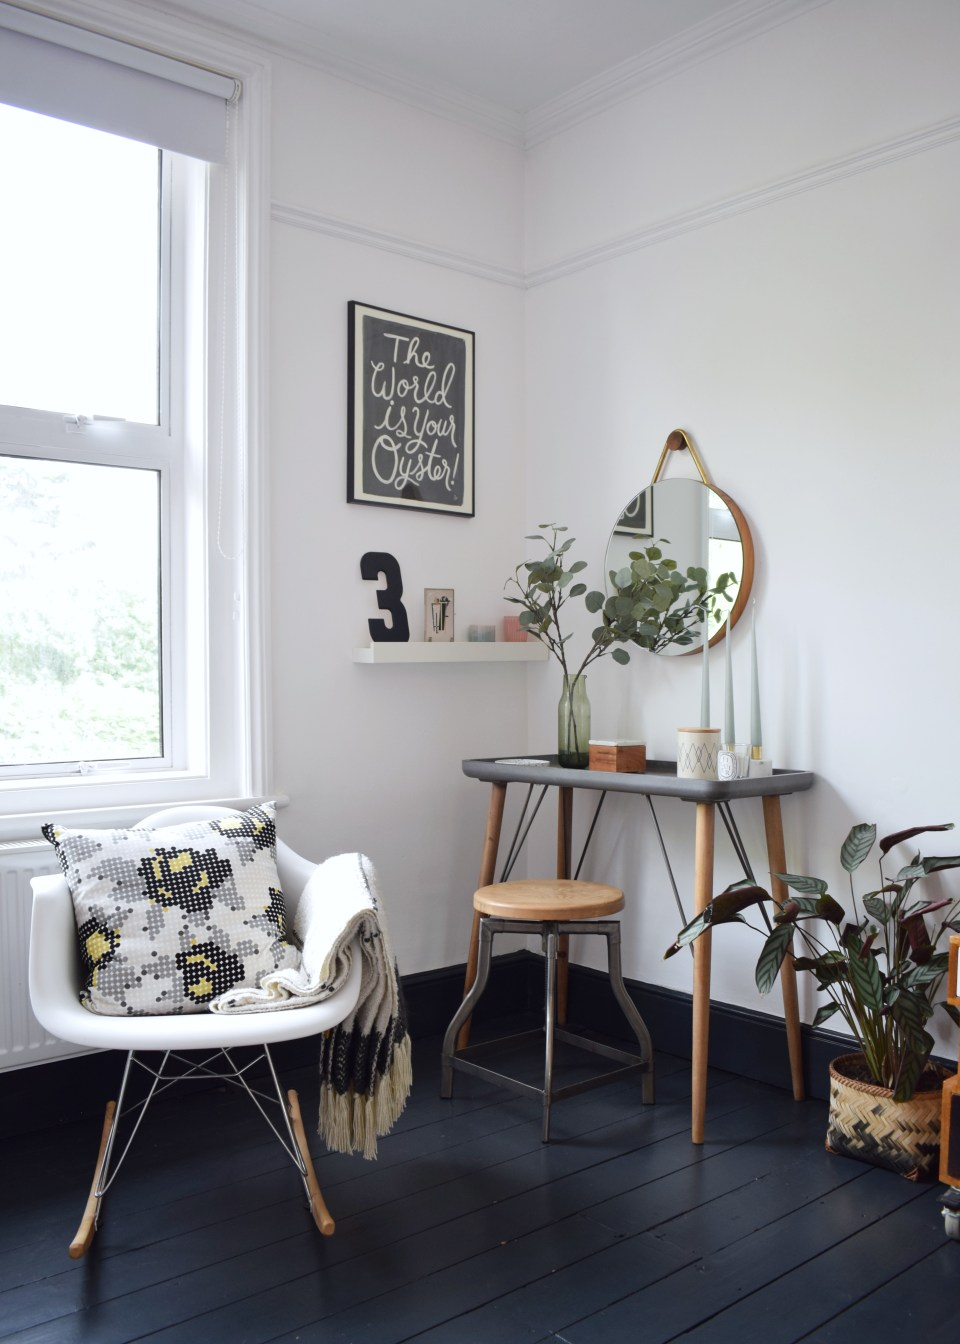 ideas and inspiration home decor - Scandinavian bohemian white and soft tones natural elements bedroom black painted floors